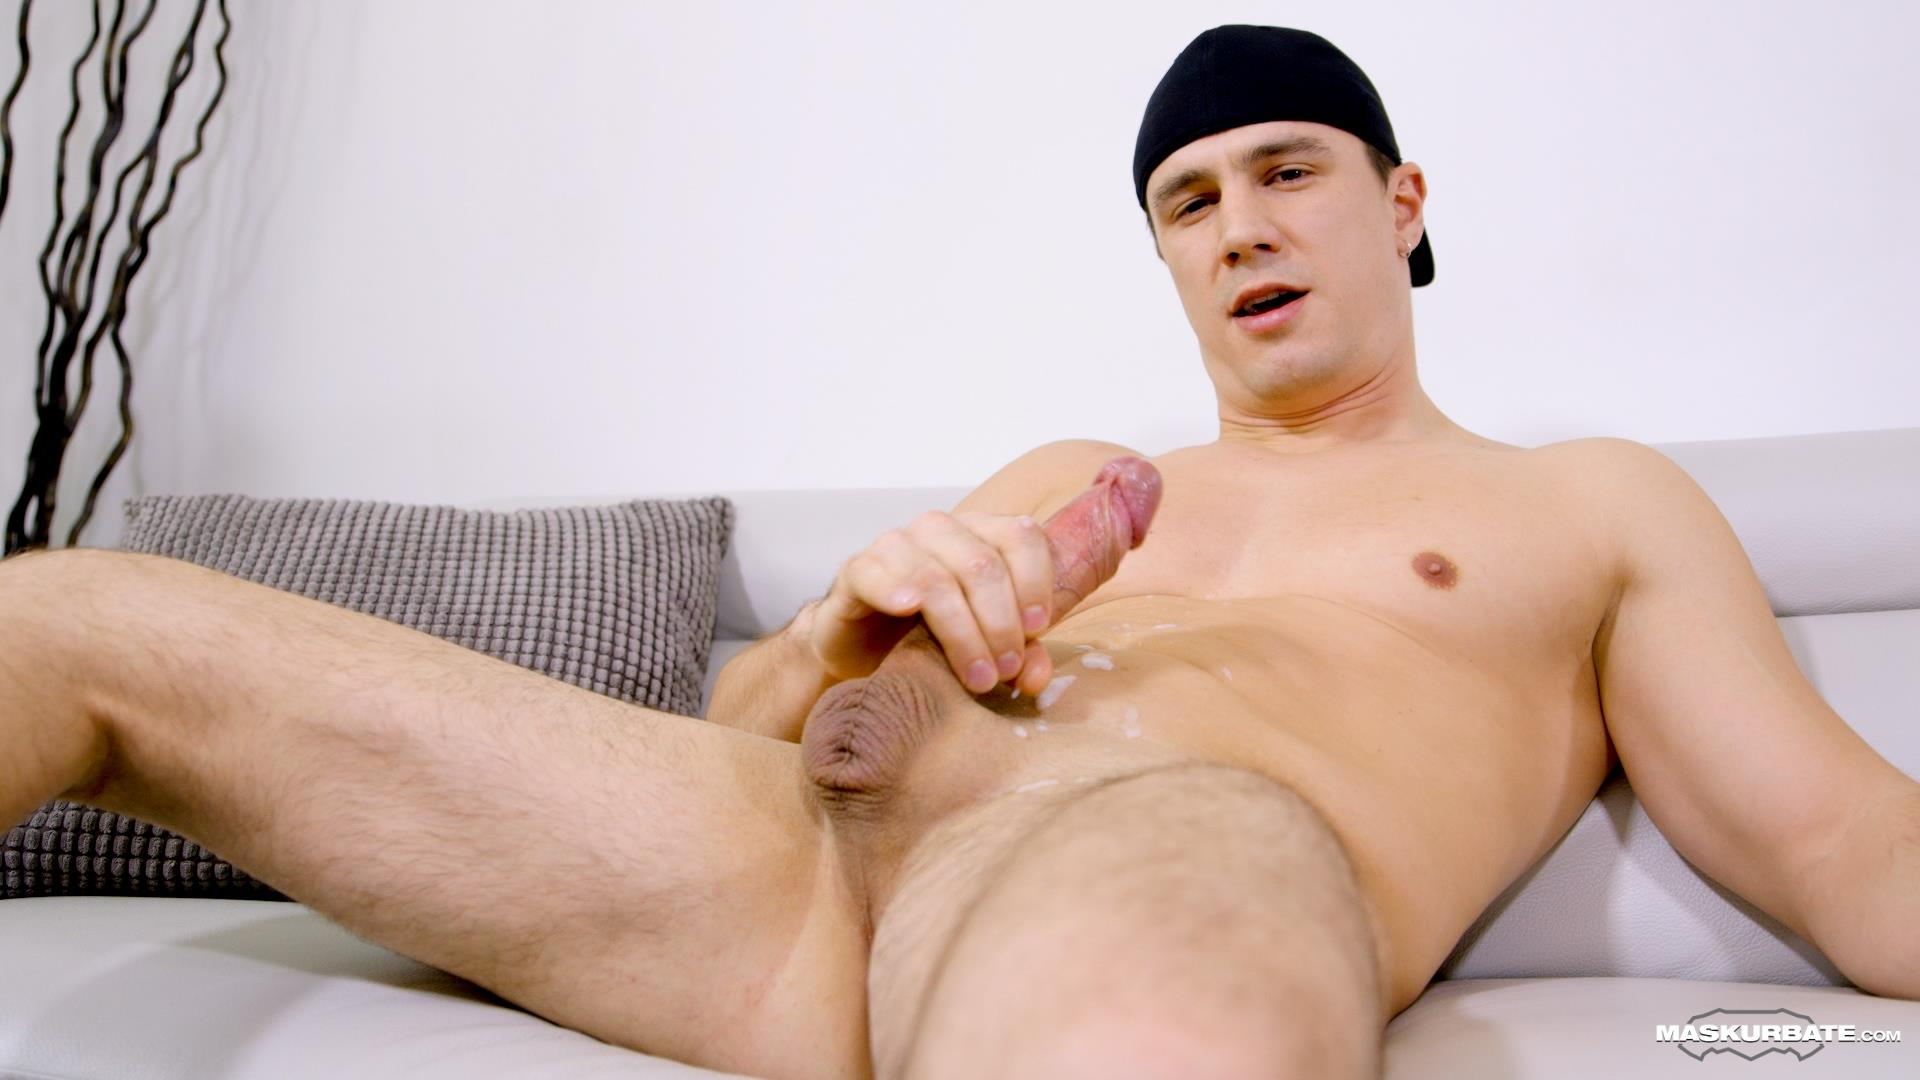 Maskurbate Ricky Muscl Jock Stroking His Big Uncut Cock Amateur Gay Porn 13 Smooth Muscle Jock Stroking His Big Uncut Cock